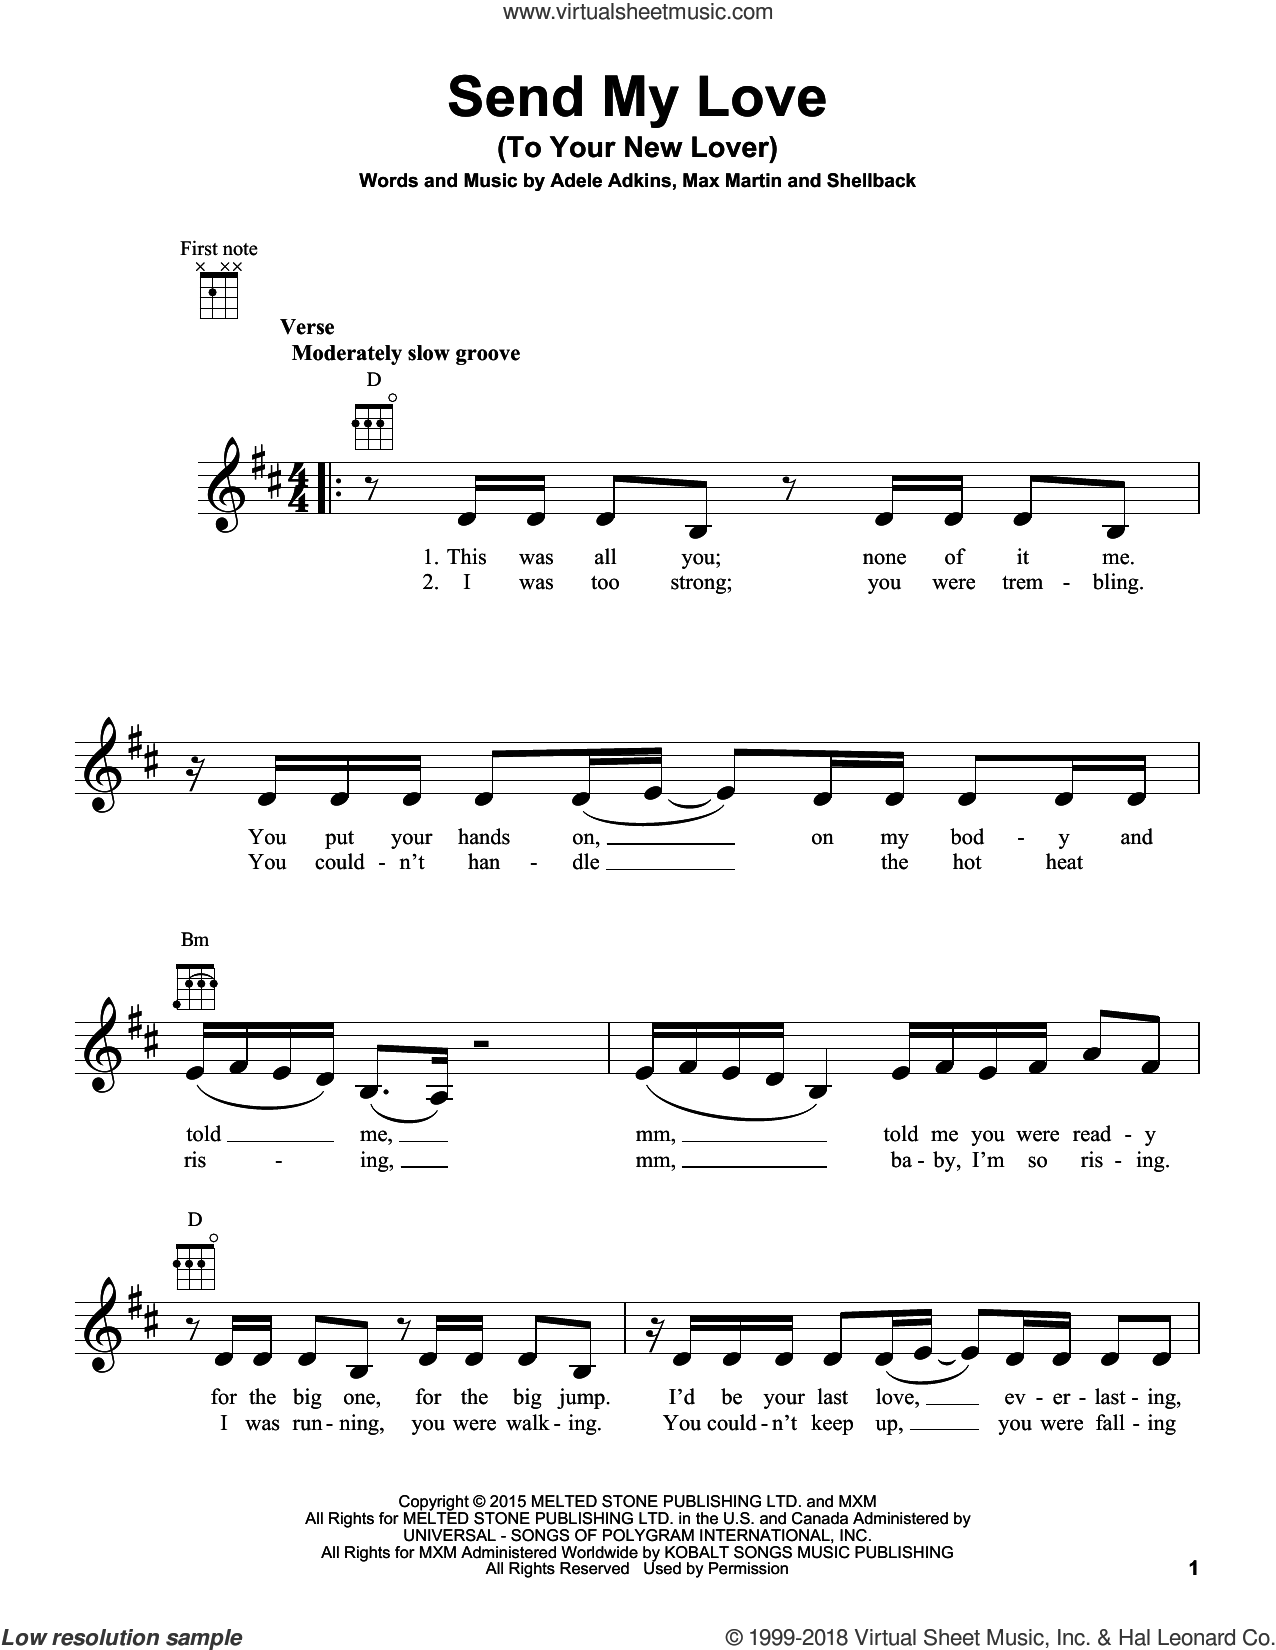 Send My Love (To Your New Lover) sheet music for ukulele by Adele, Adele Adkins, Johan Schuster, Max Martin and Shellback, intermediate skill level